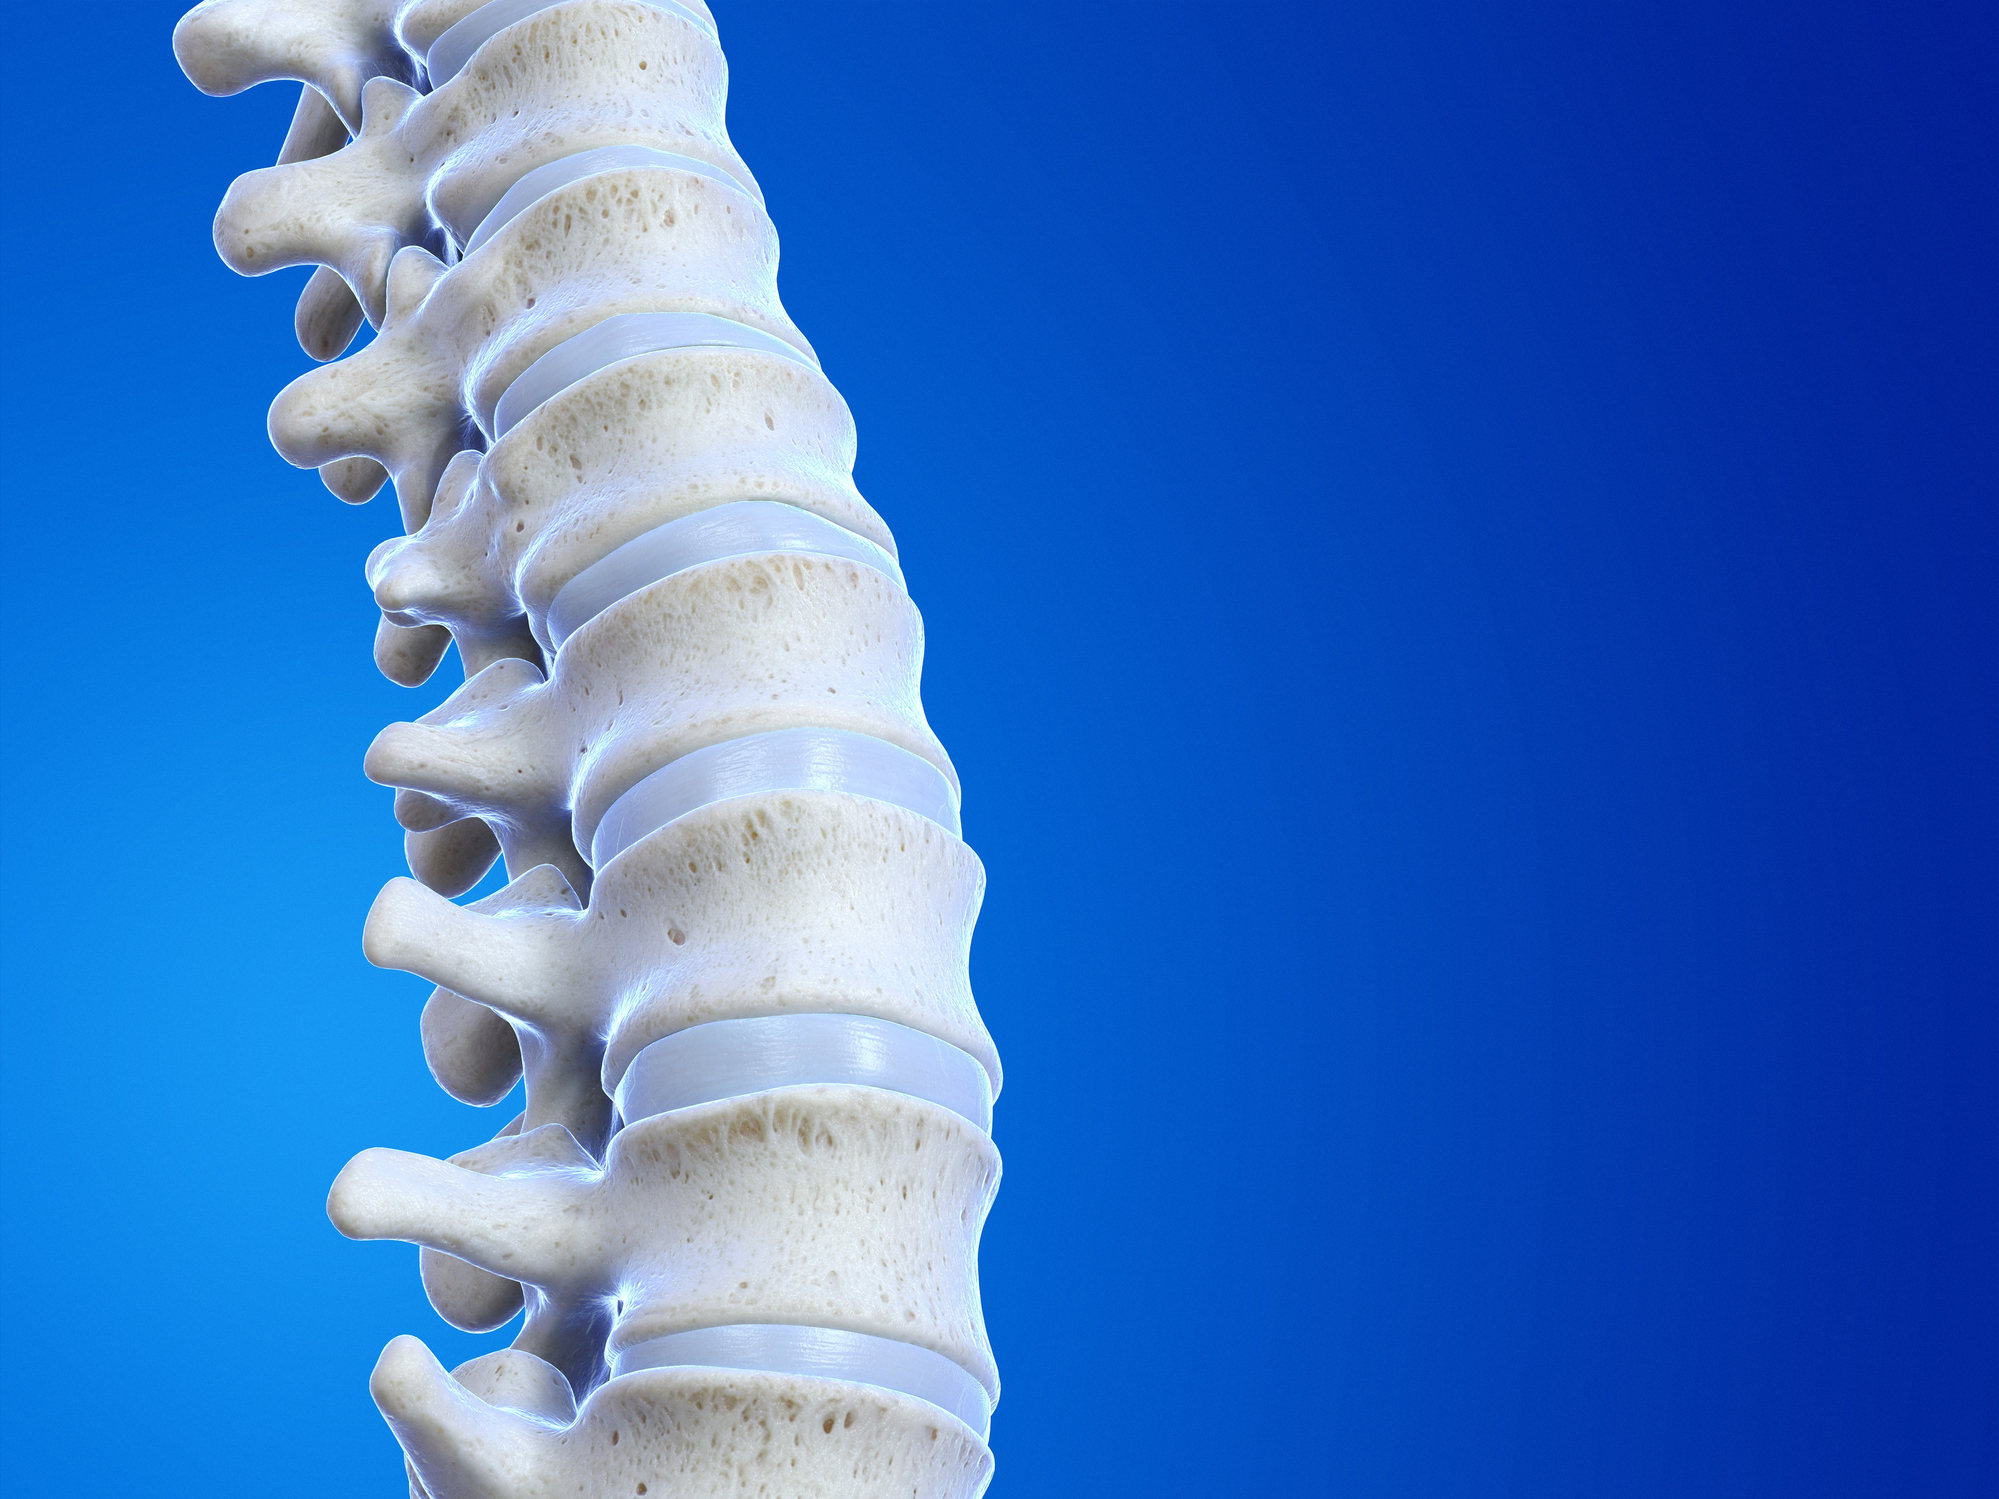 Human spine, illustration shown to Grand Prairie TX patient